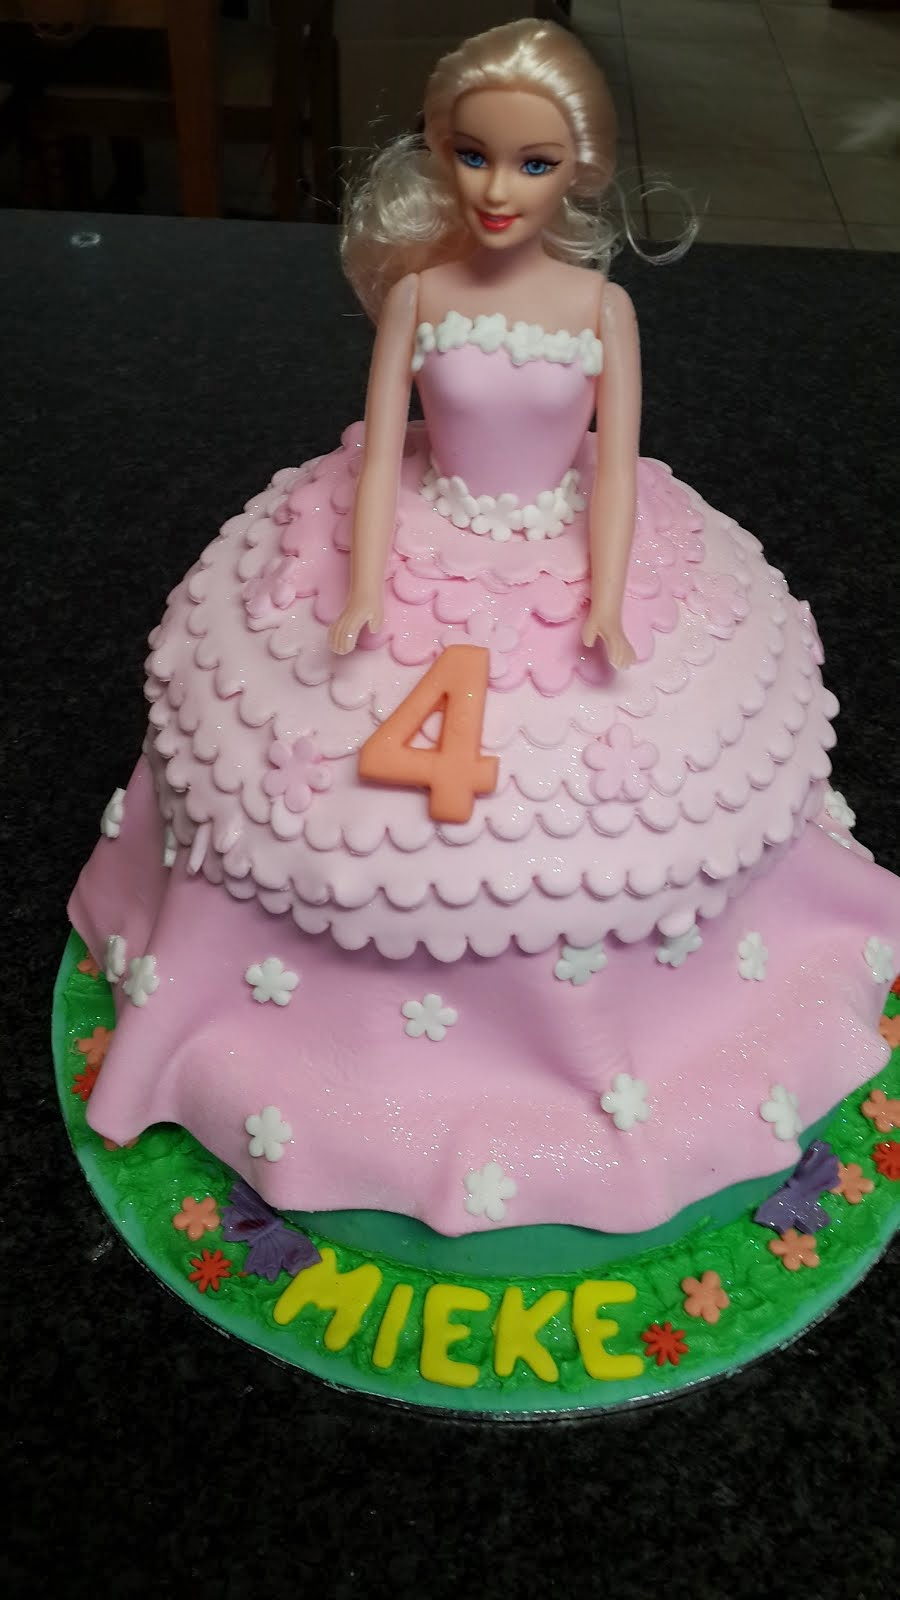 Barbie Cake for Mieke